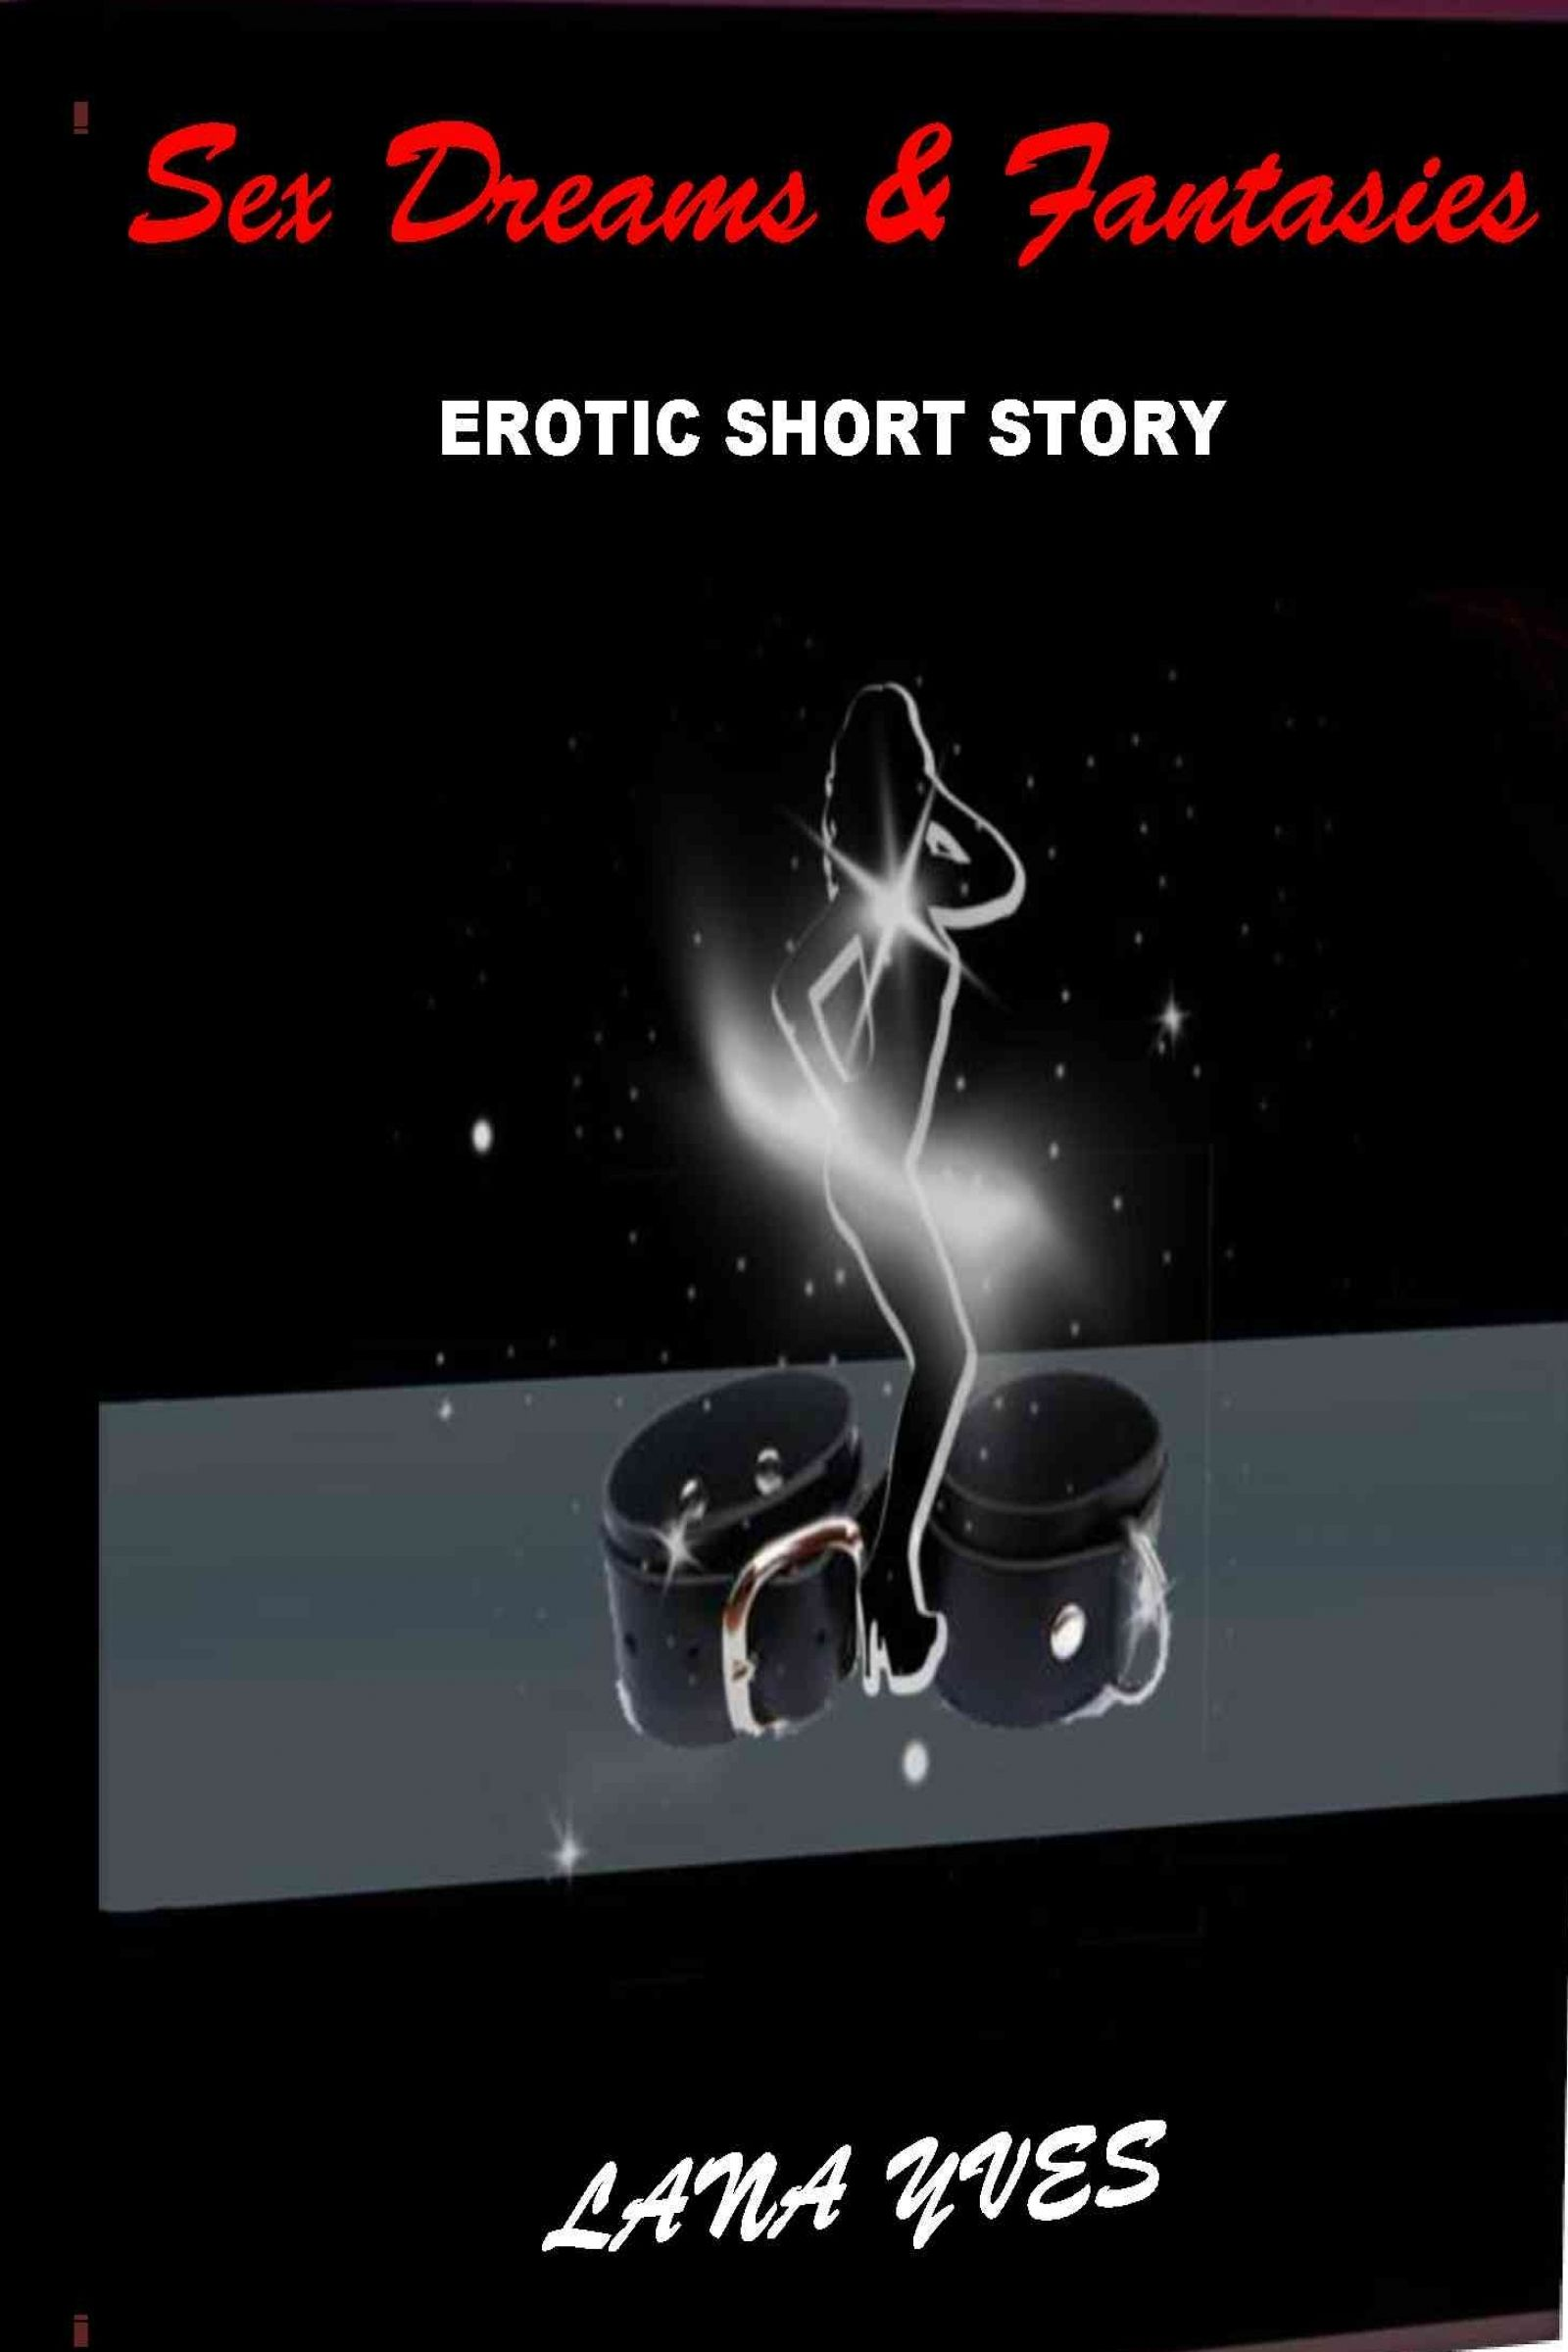 Sex Dreams & Fantasies by Lana Yves. We all have Erotic dreams and fantasies from time to time. Get your copy of this exhilarating Erotic romance novel on http://eroticafiction.webs.com/ or here on Amazon.com - http://amzn.to/TzPZY4